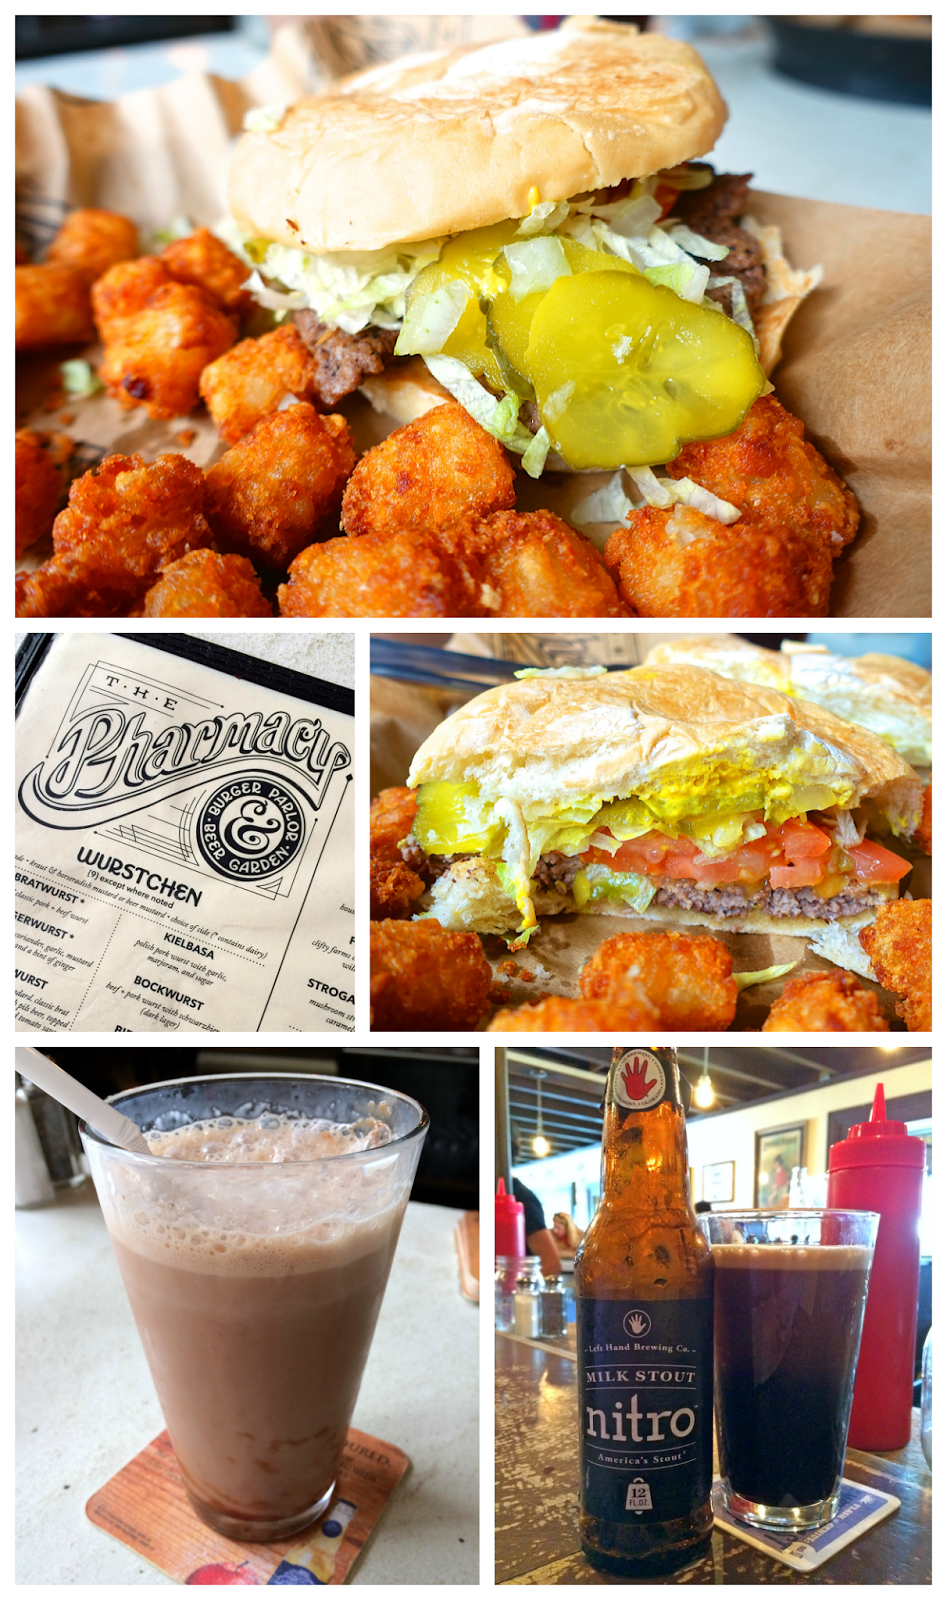 The Pharmacy Burger Parlor and Beer Garden - Nashville, TN - BEST burger in Nashville - hand made burgers, brats and old fashioned sodas. They even make their own condiments! Don't miss the tots! Great beer list. Sit outside in the beirgarten!